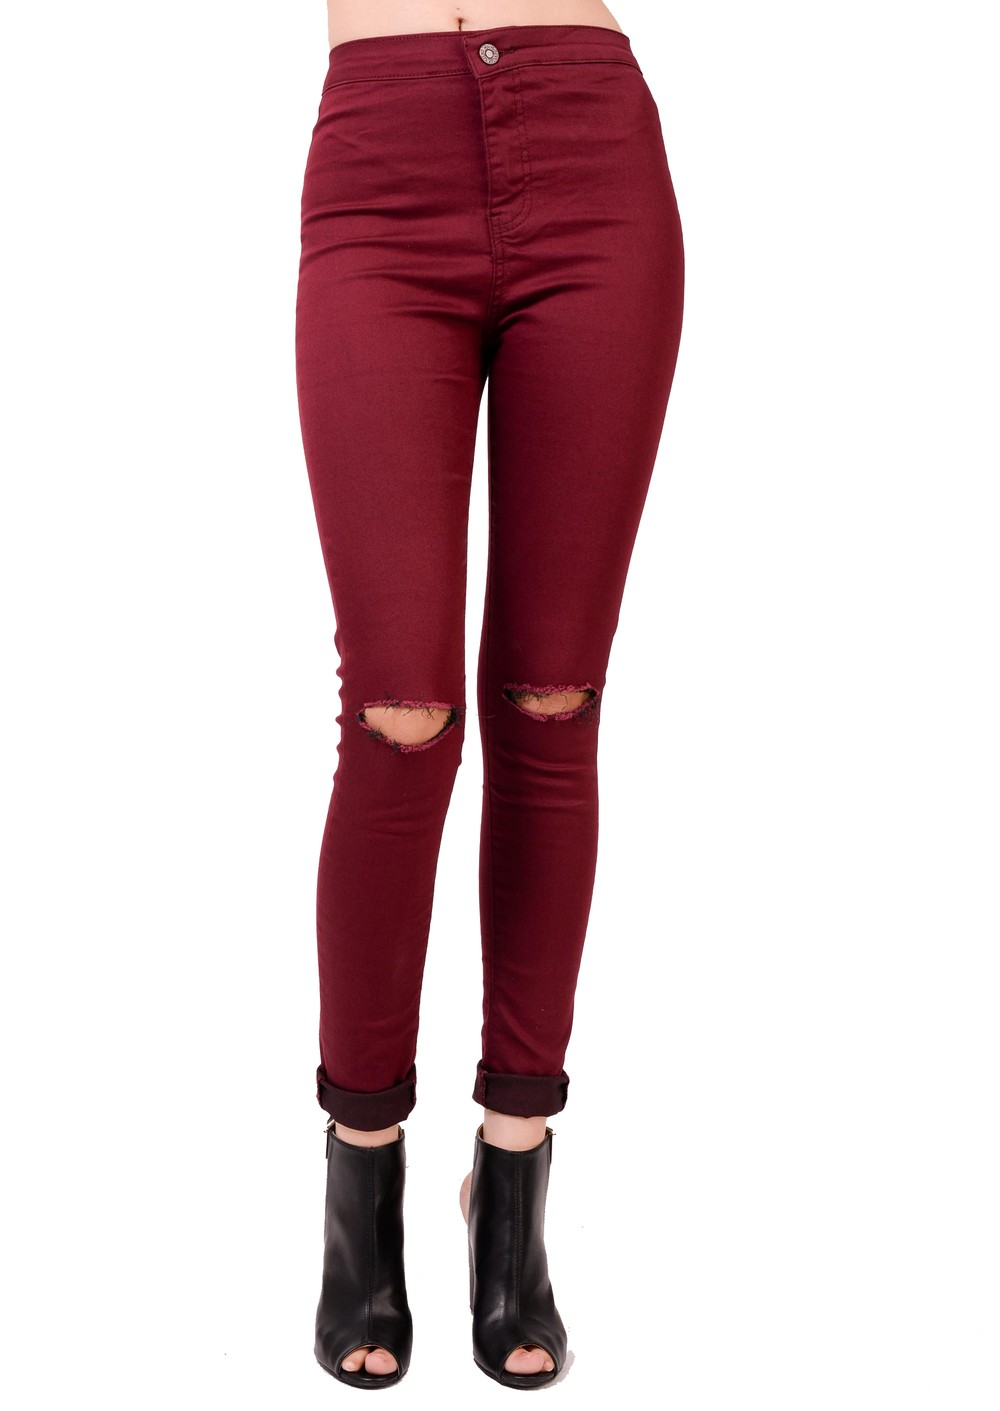 shop now · Home · Clothing · Ripped & Skinny Jeans; High Waisted ... - High Waisted Knee Ripped Super Skinny Jeans Burgandy